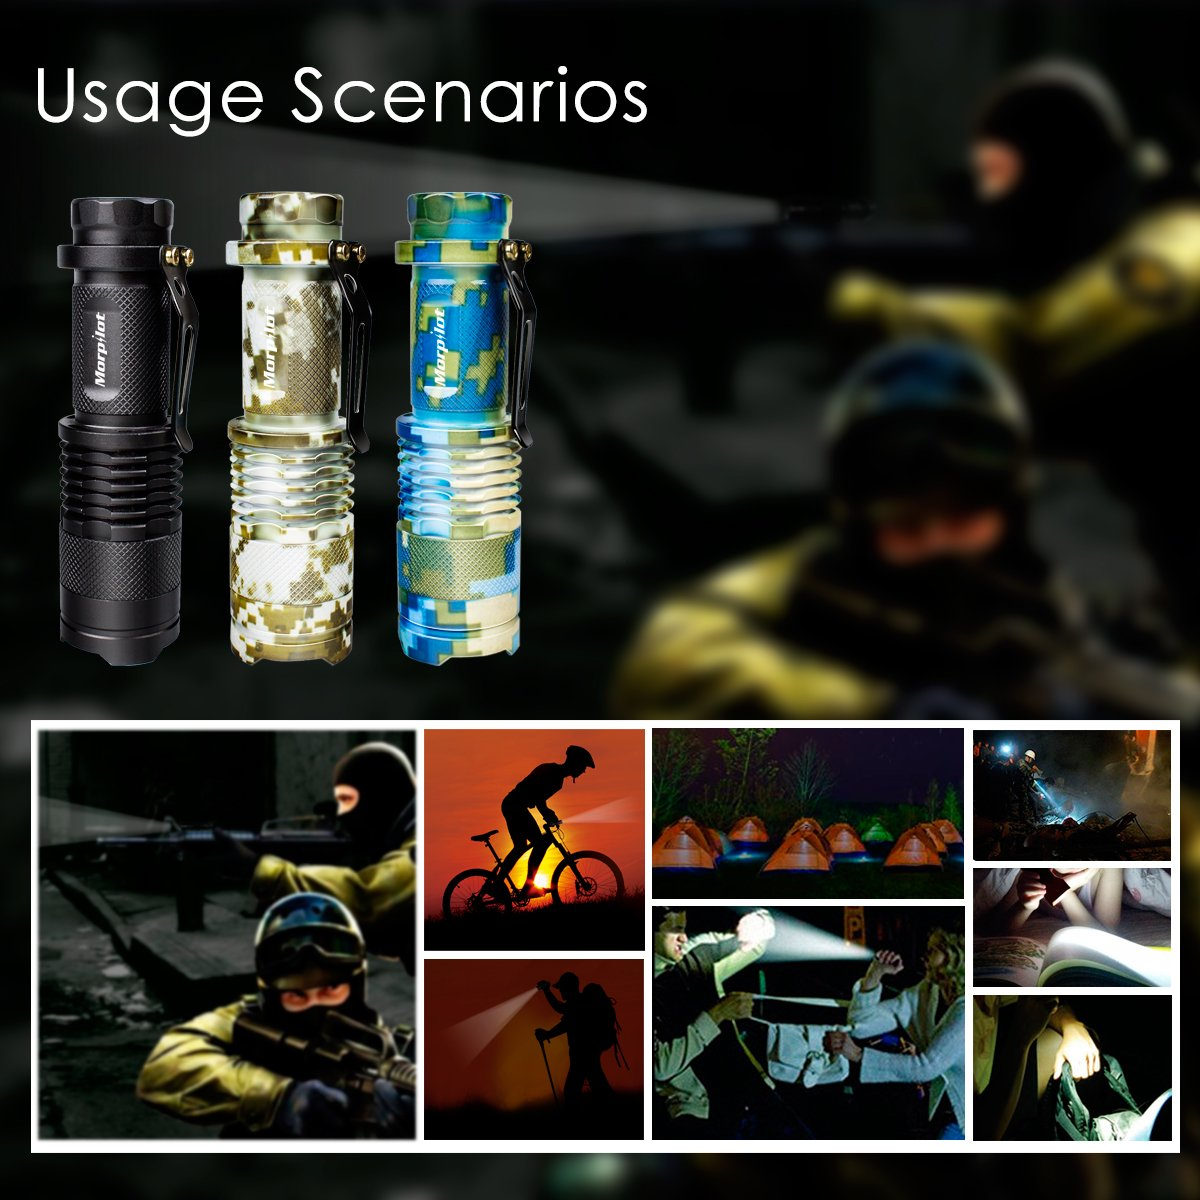 Morpilot Tactical Flashlight,Pocket-Sized LED Torch 350 Lumen 5 Modes Ultra Bright with Adjustable Focus for Hunting Camping Hiking Cycling, Ideal for Christmas Gift